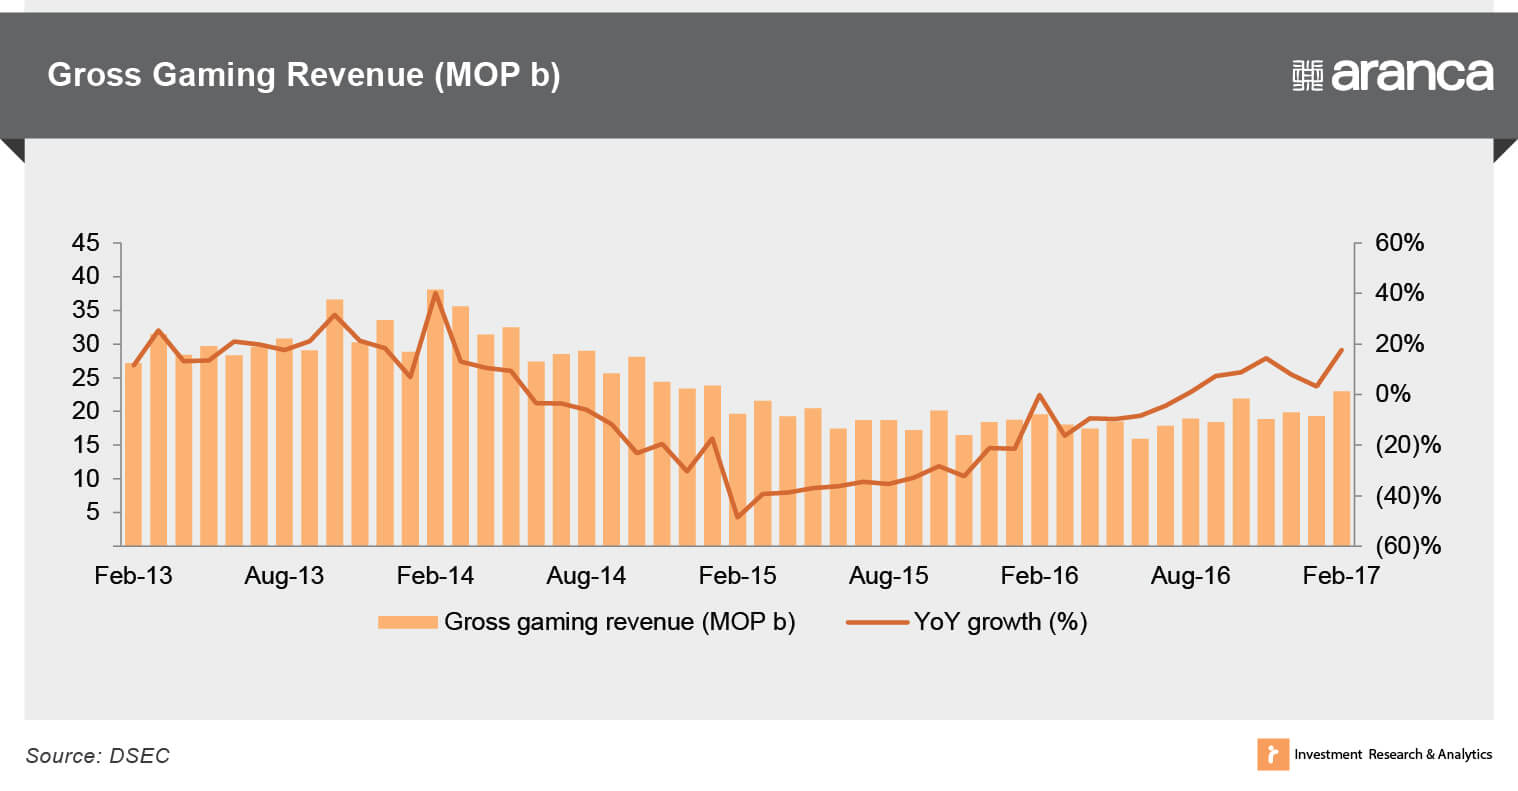 Gross gaming revenue (MOP b)